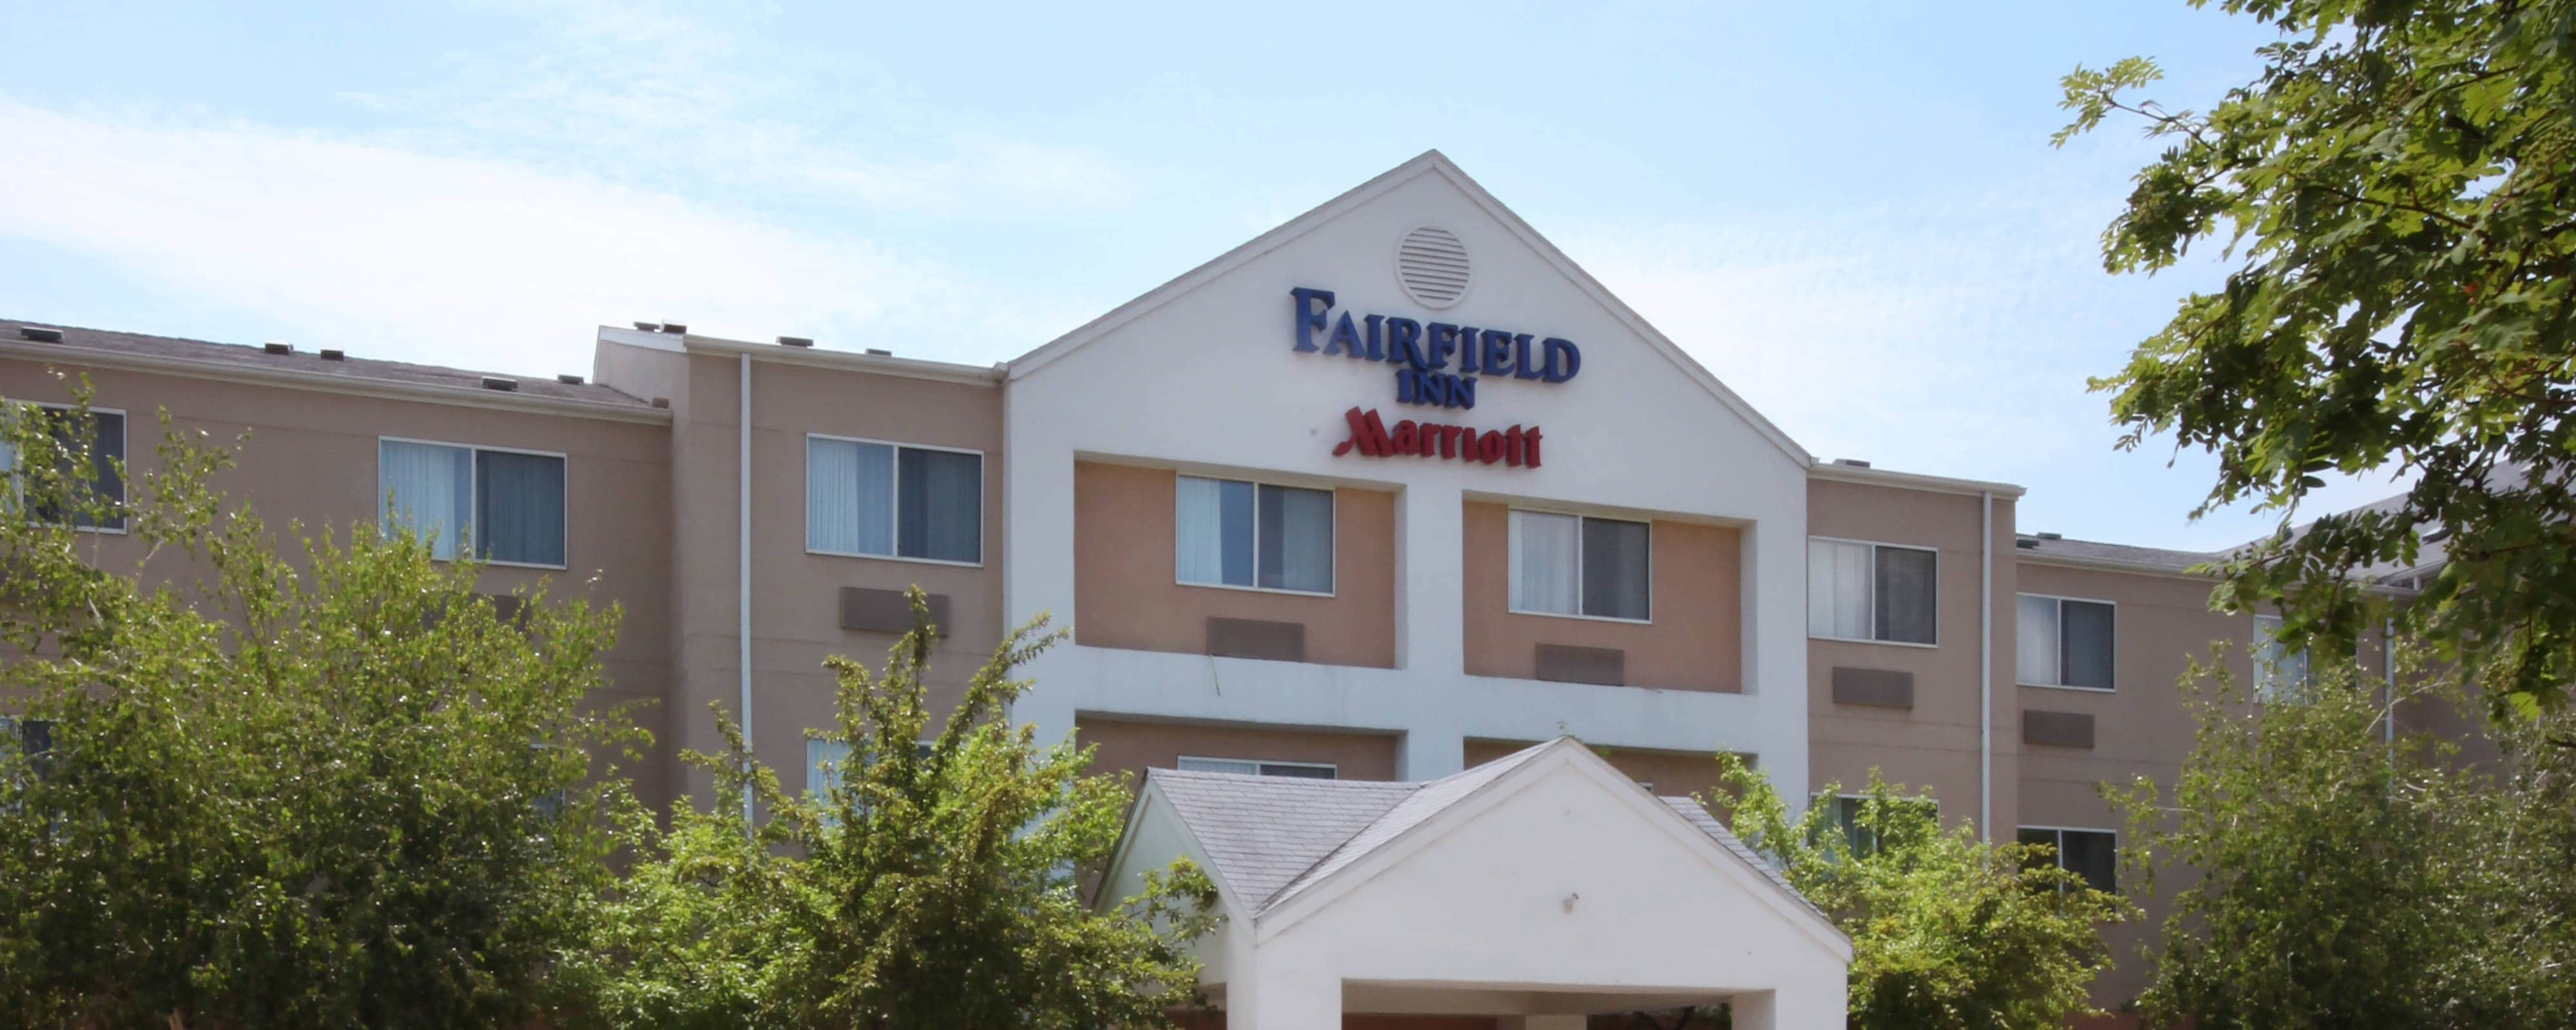 Fairfield Inn Hotel in Hudson, WI